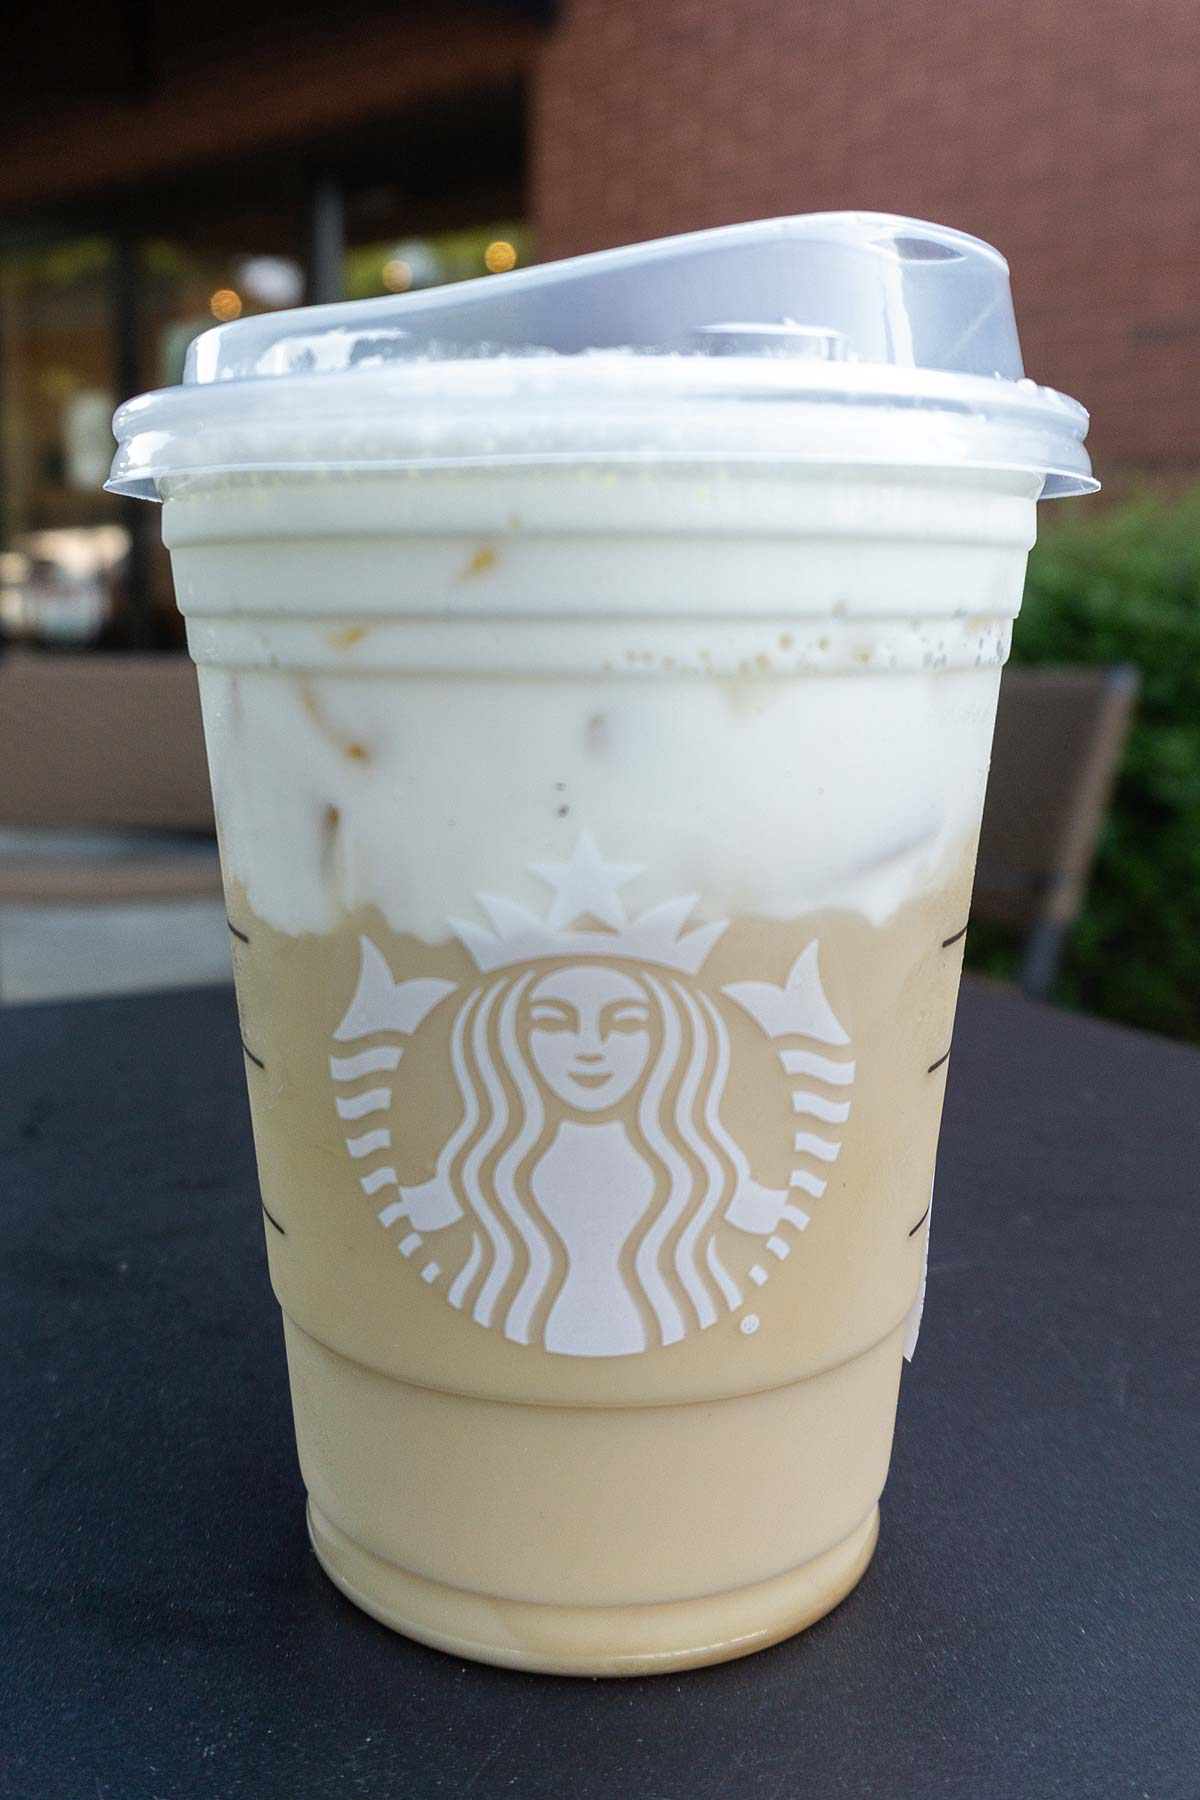 TikTok Iced Chai Latte in a plastic cup.